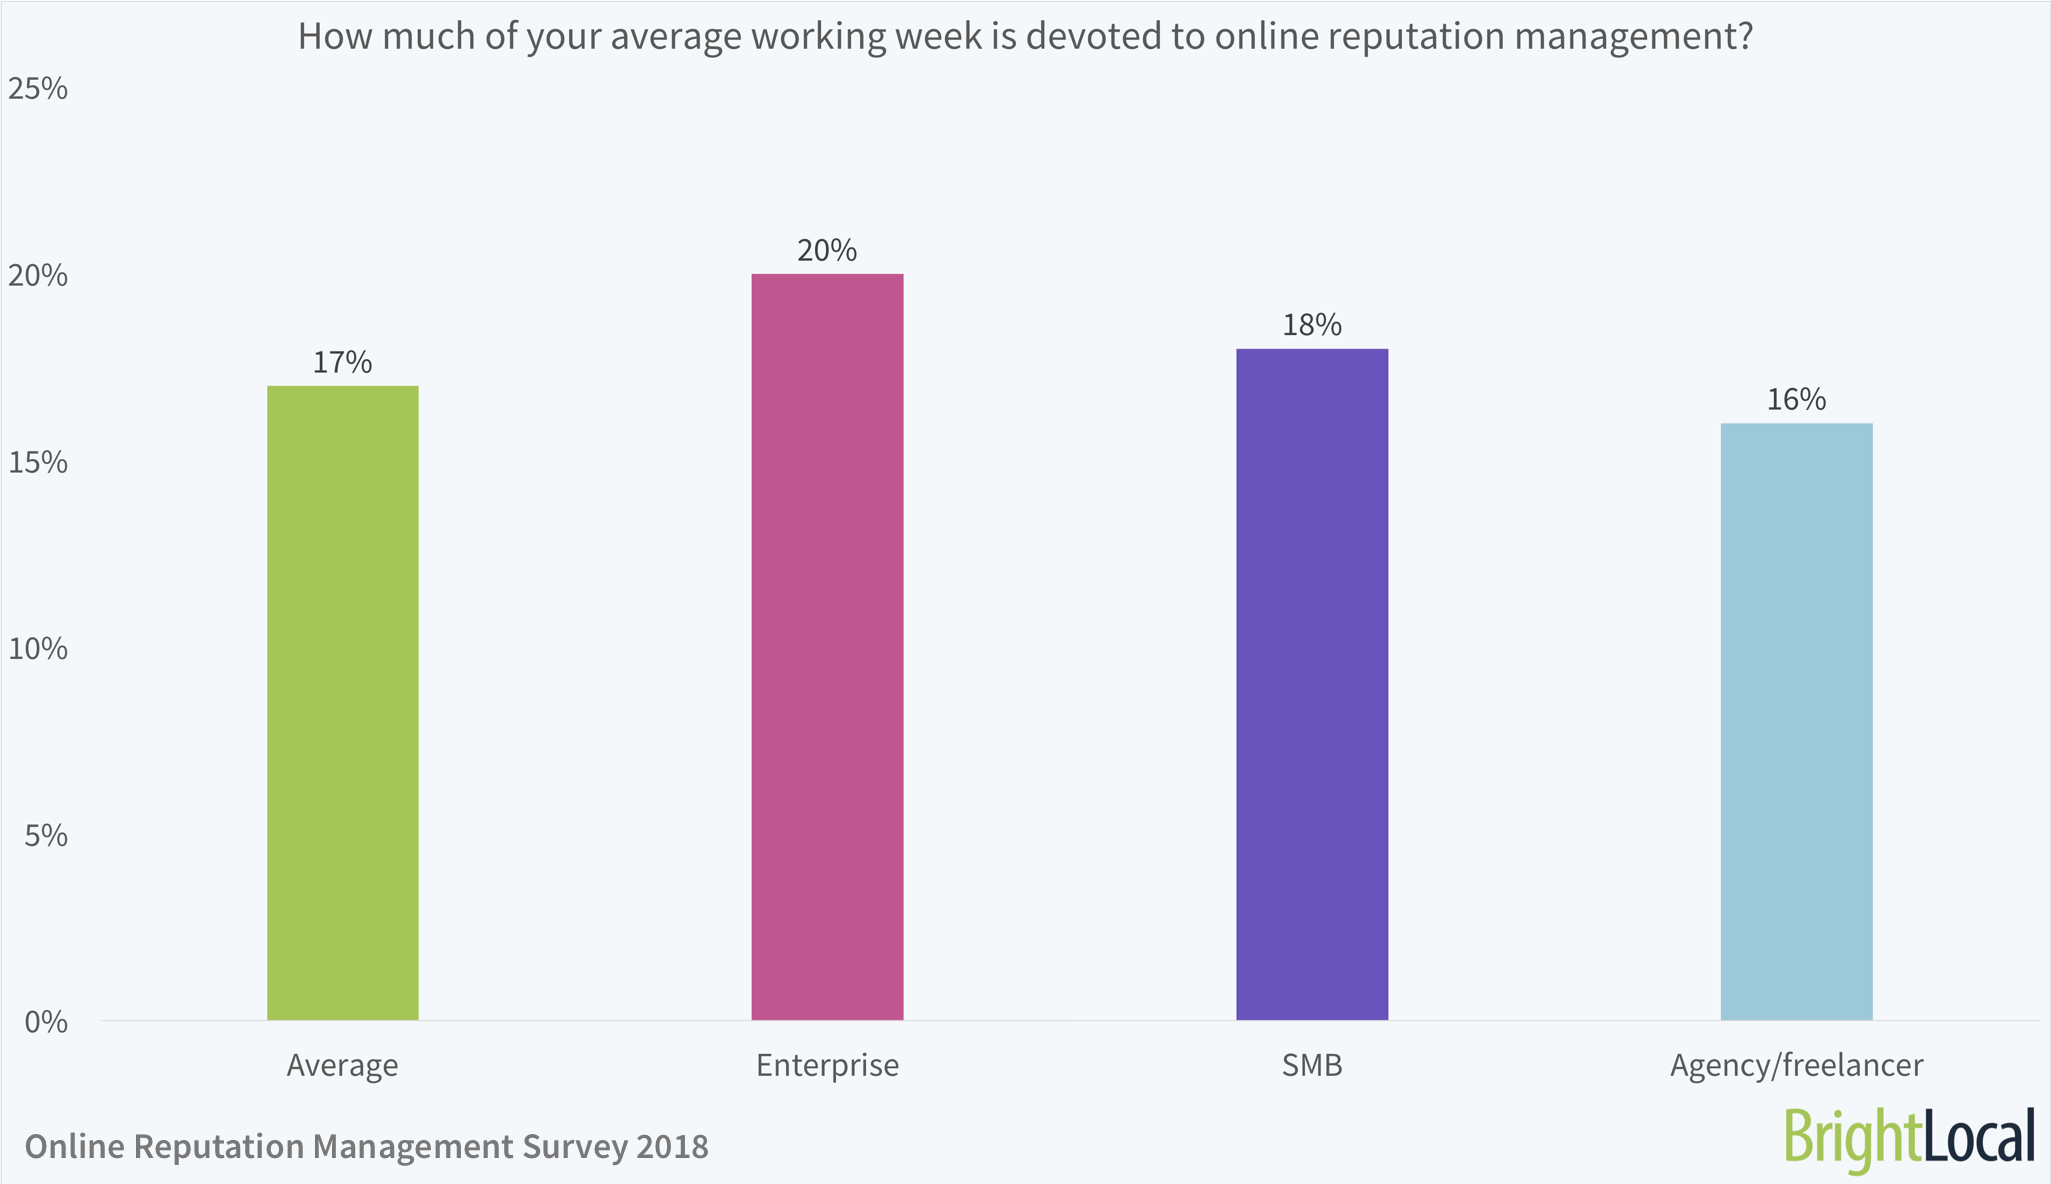 How much of your average working week is devoted to online reputation management?